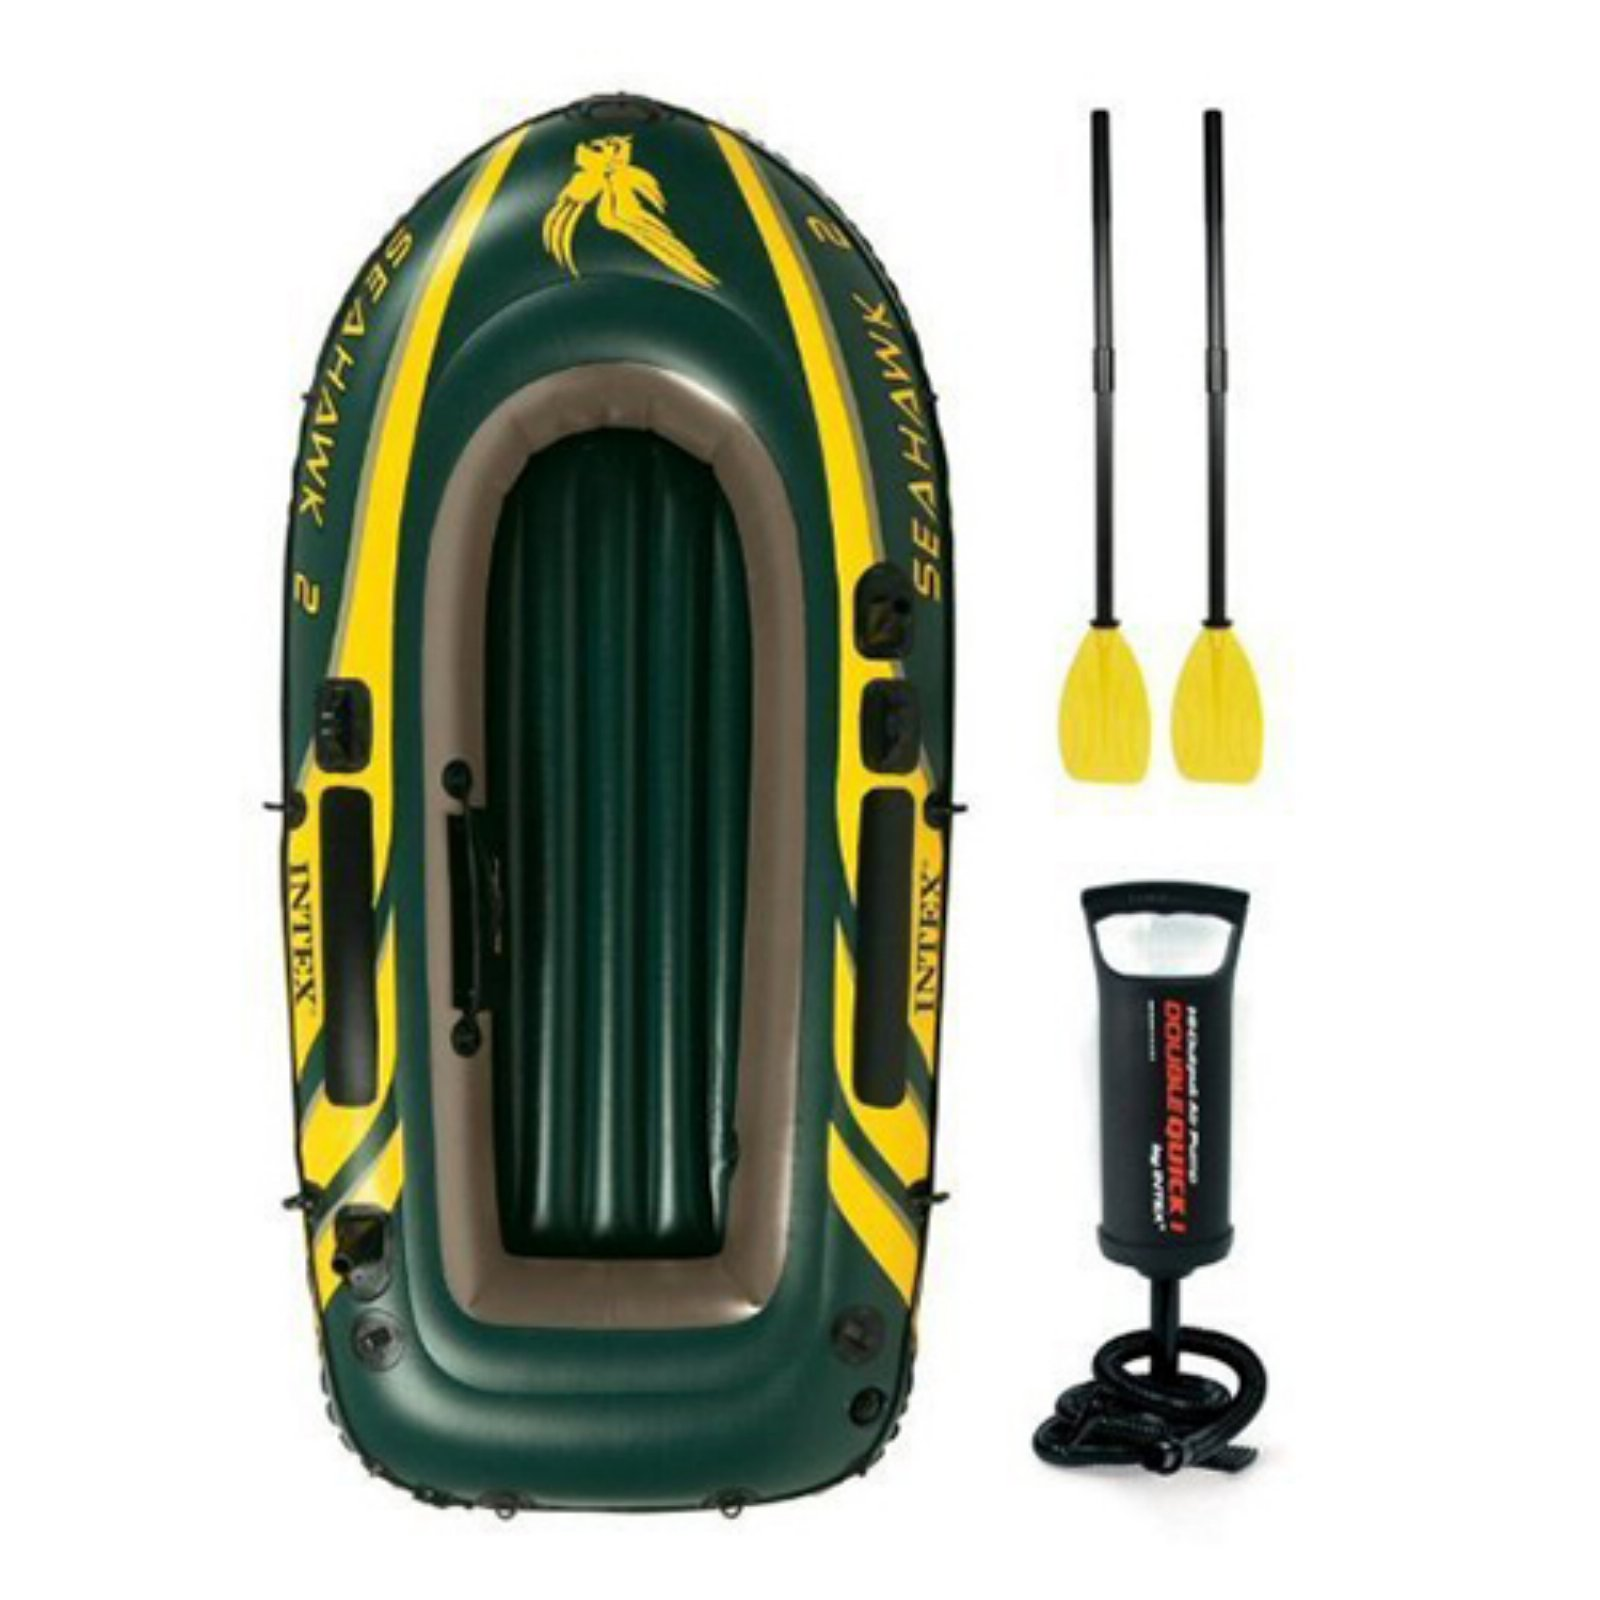 Intex Inflatable Seahawk 2 Two-Person Boat with Oars and Pump by Intex